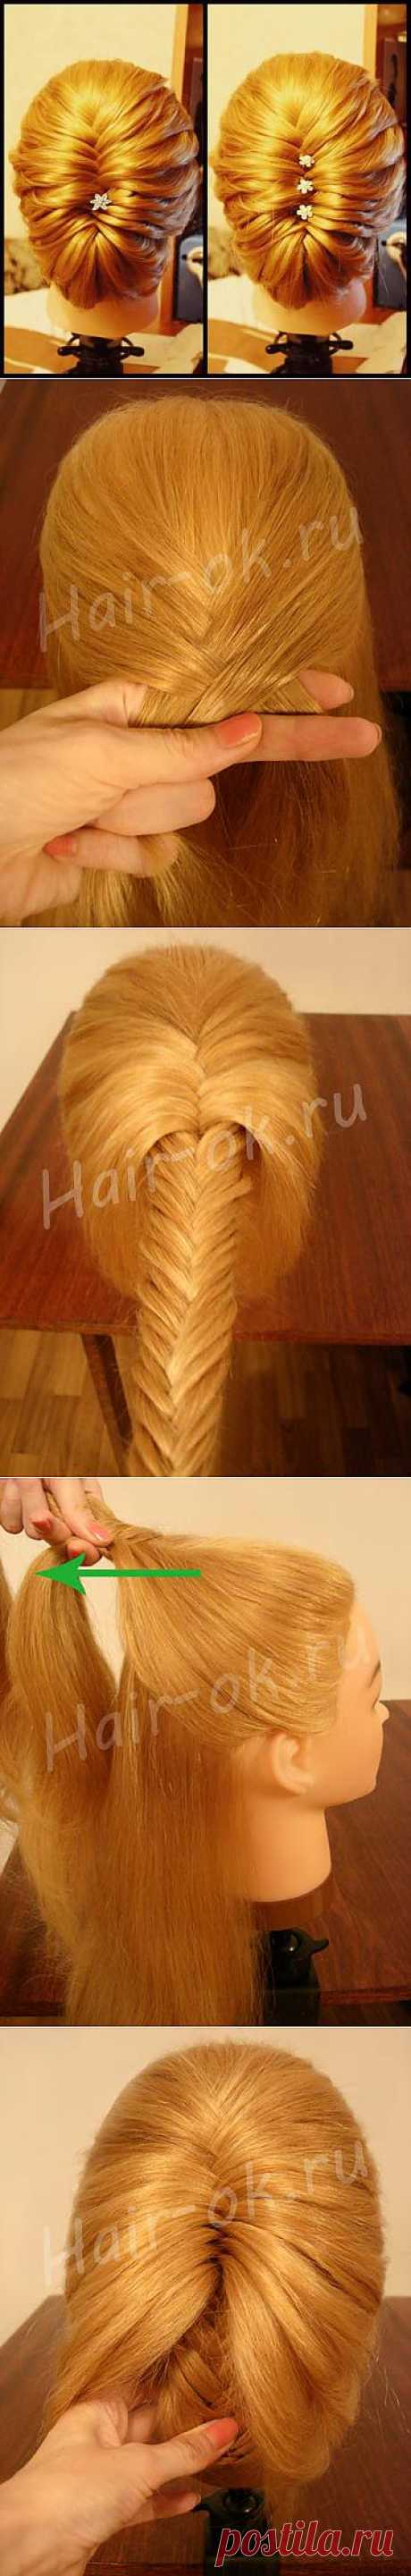 Hairdress fish cone